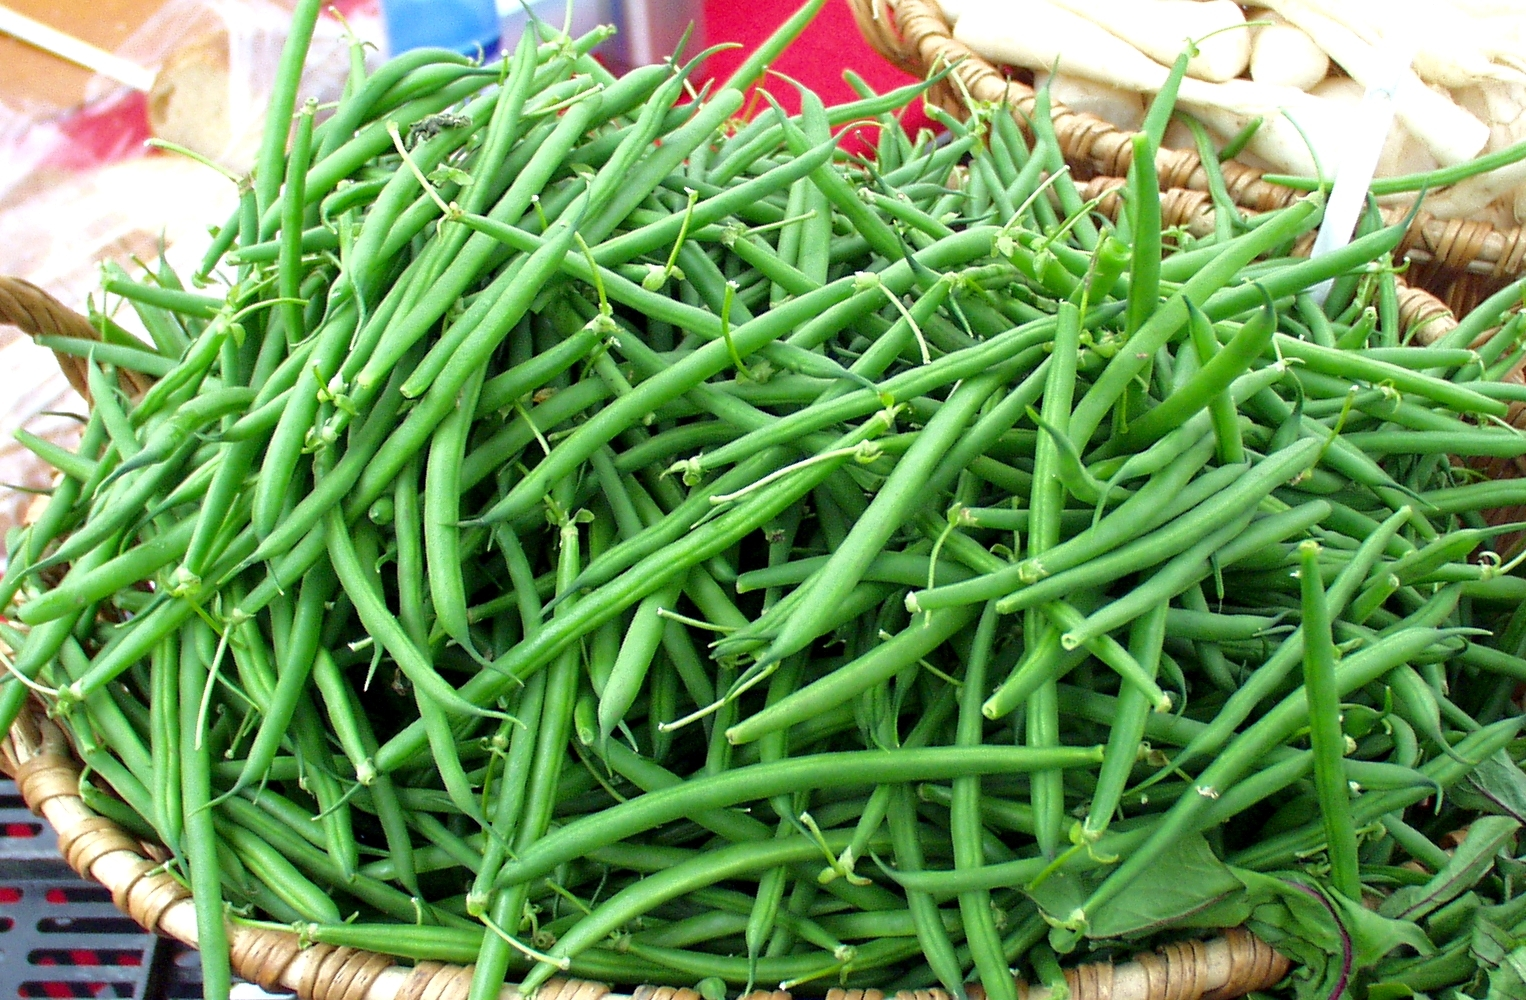 Stoney Plains harricot vert green beans, which for those who speak both French and English is redundant. Photo copyright 2009 by Zachary D. Lyons.